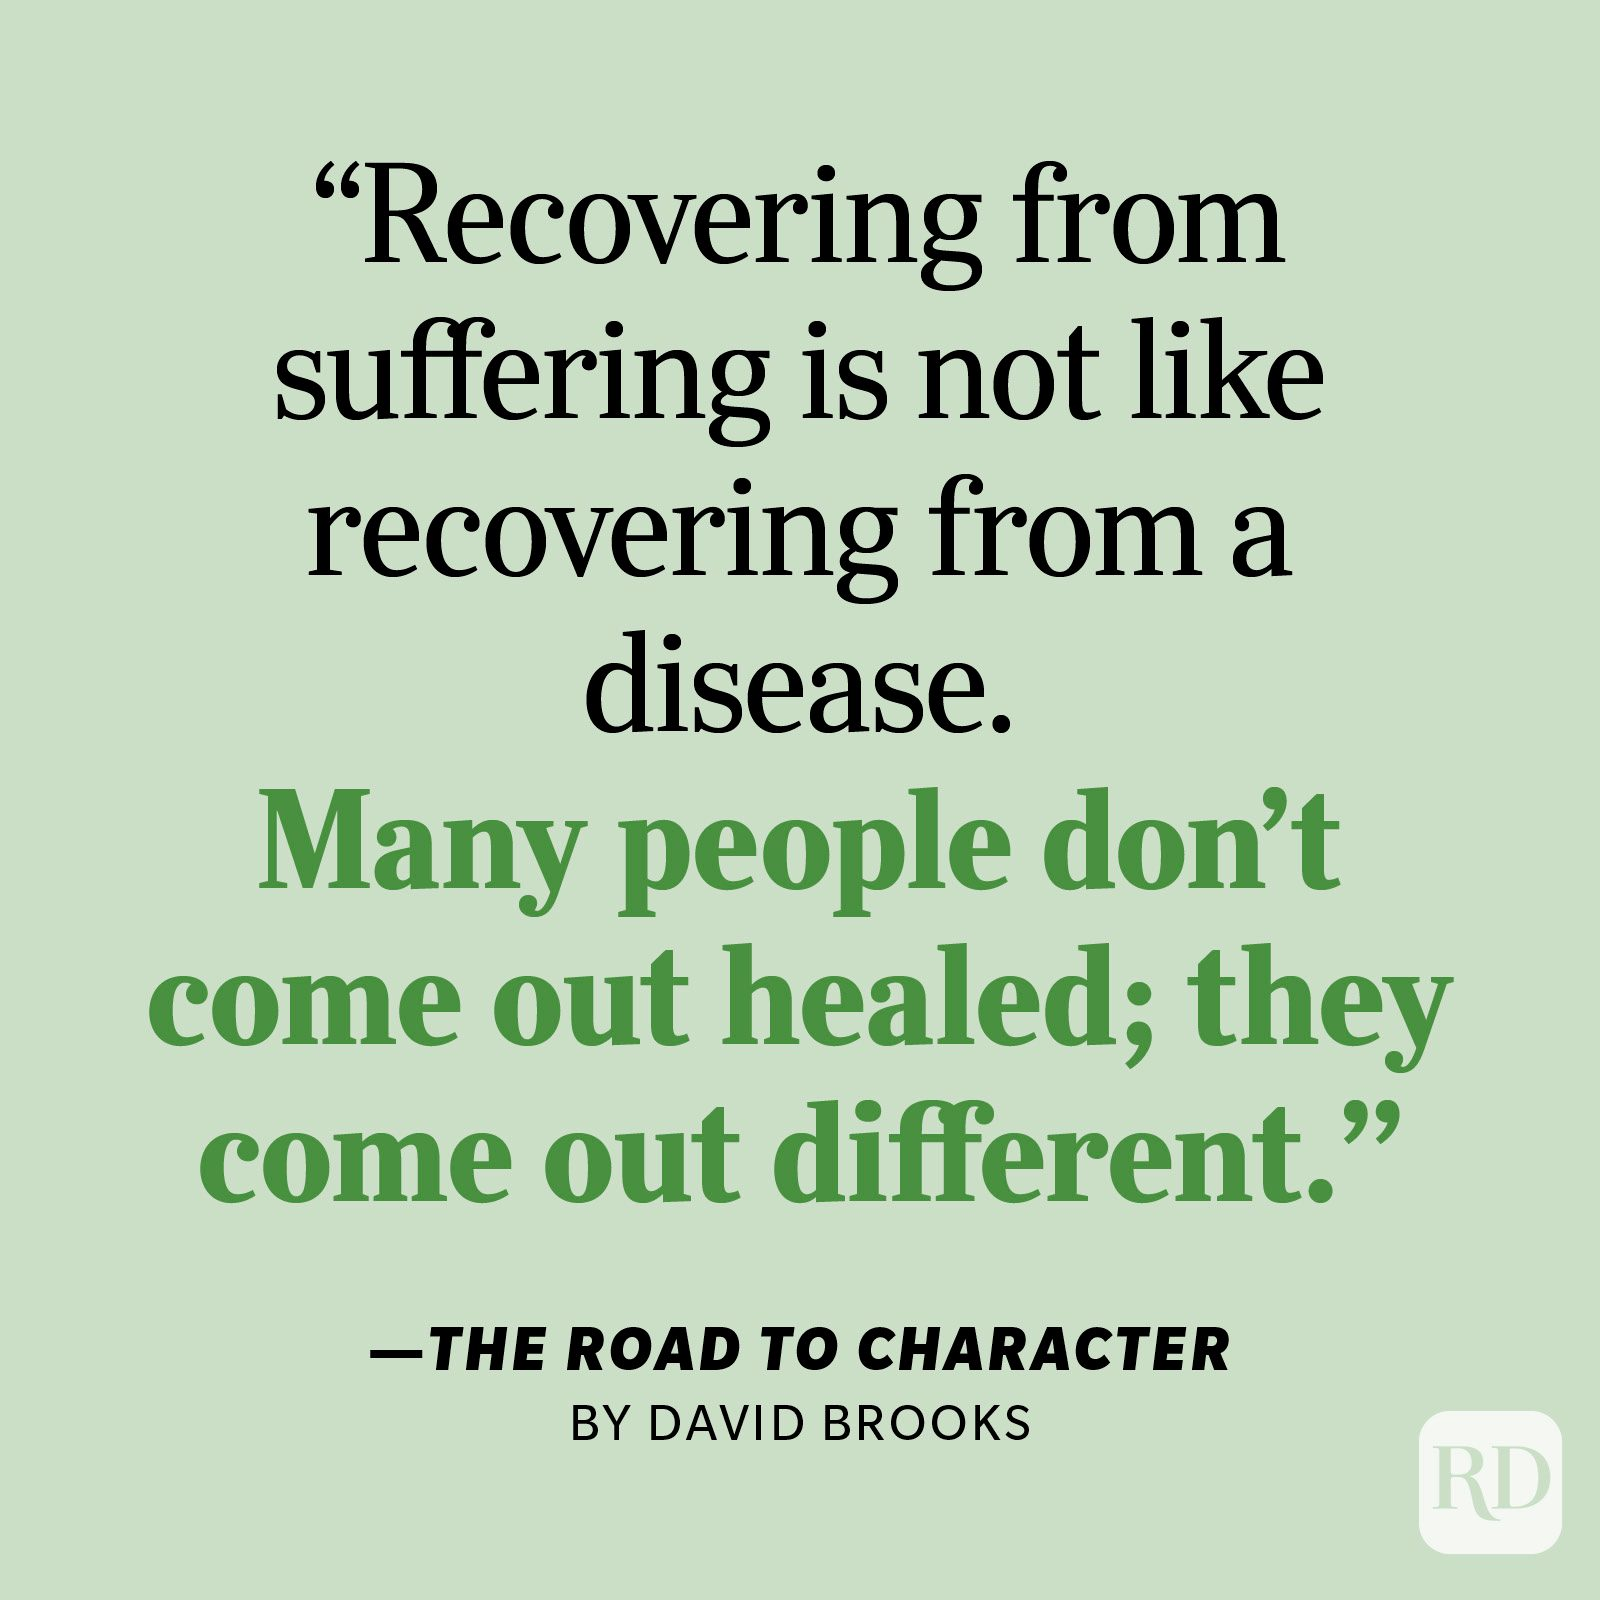 """The Road to Character by David Brooks """"Recovering from suffering is not like recovering from a disease. Many people don't come out healed; they come out different."""""""